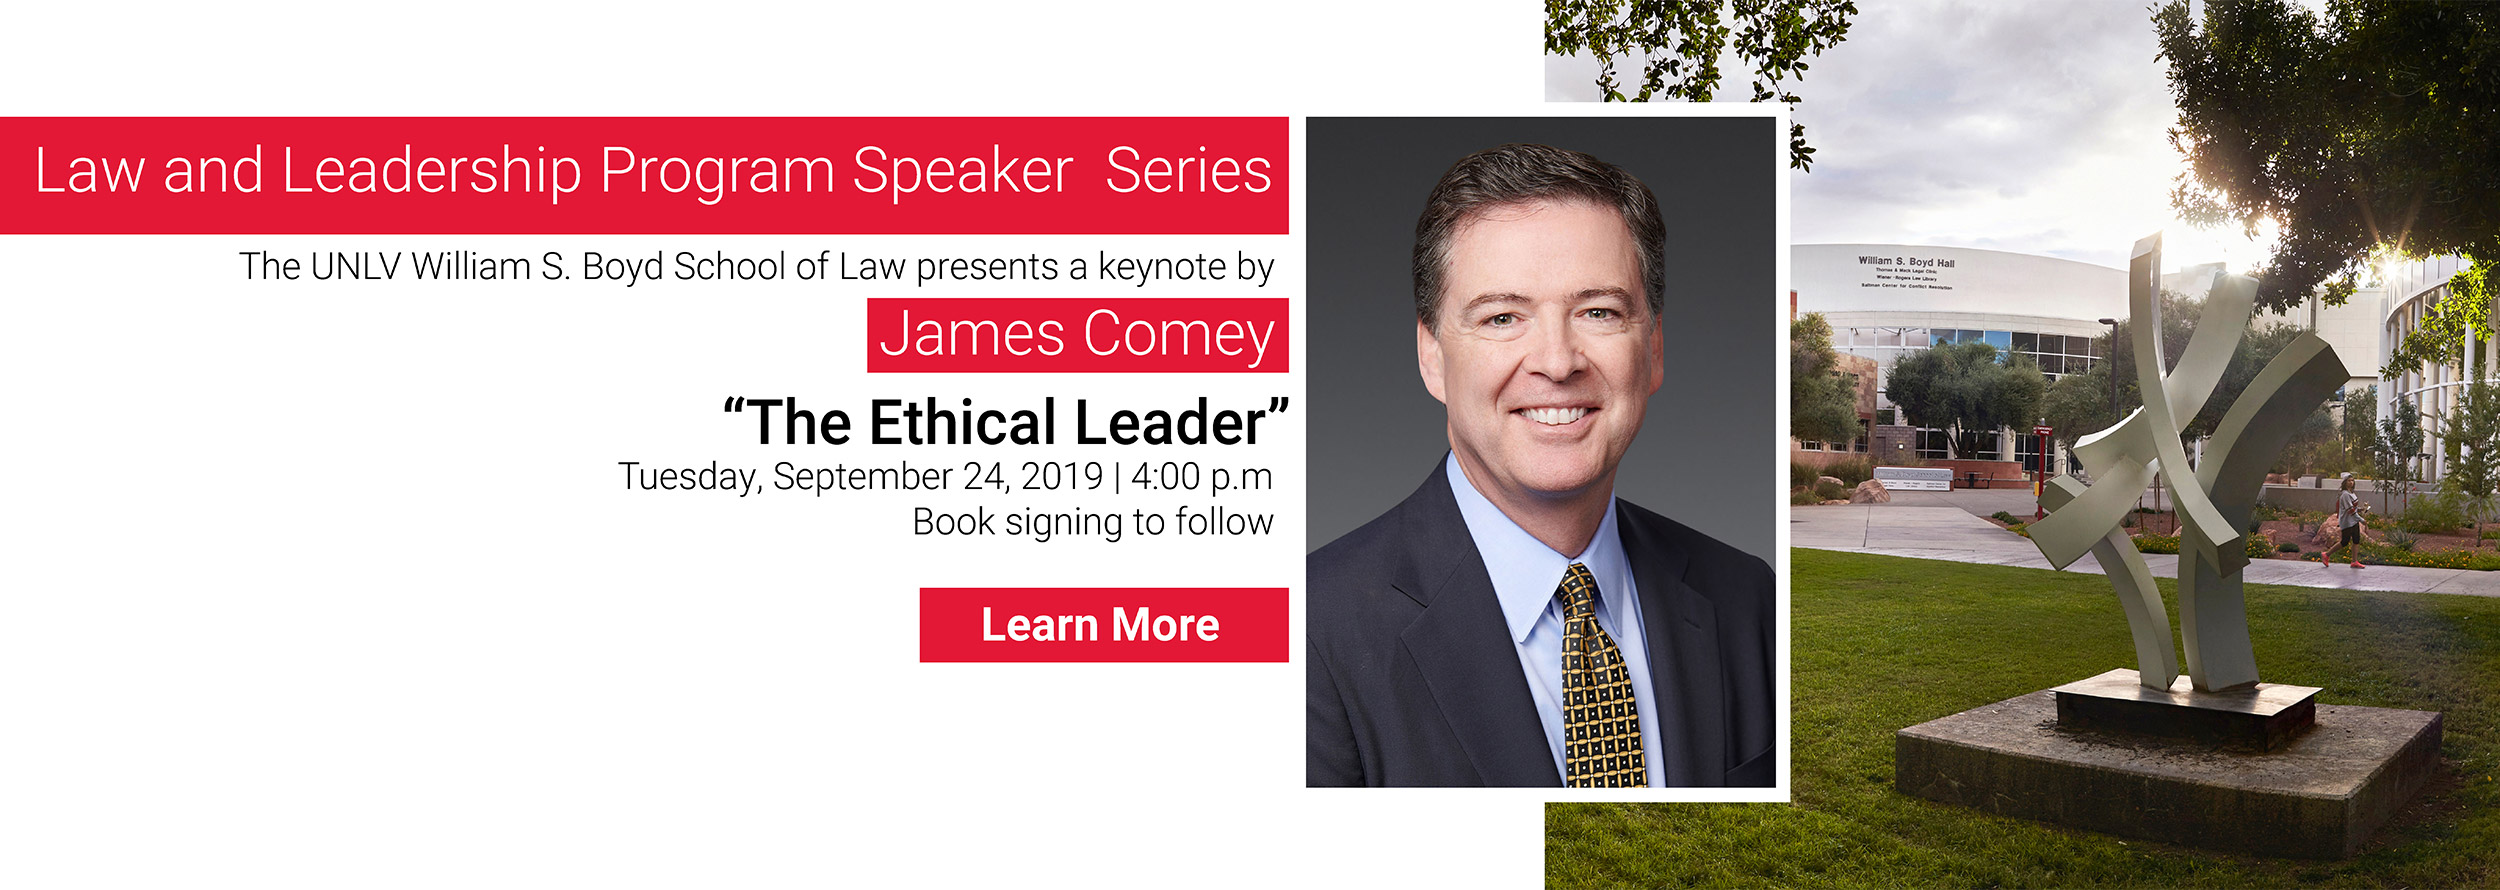 Law and Leadership Program Speaker Series. The UNLV William S. Boys School of Law presents a keynote by James Comey - 'The Ethical Leader' on Tuesday, September 24, 2019 at 4 p.m. Book signing to follow. Learn more about the event and RSVP.